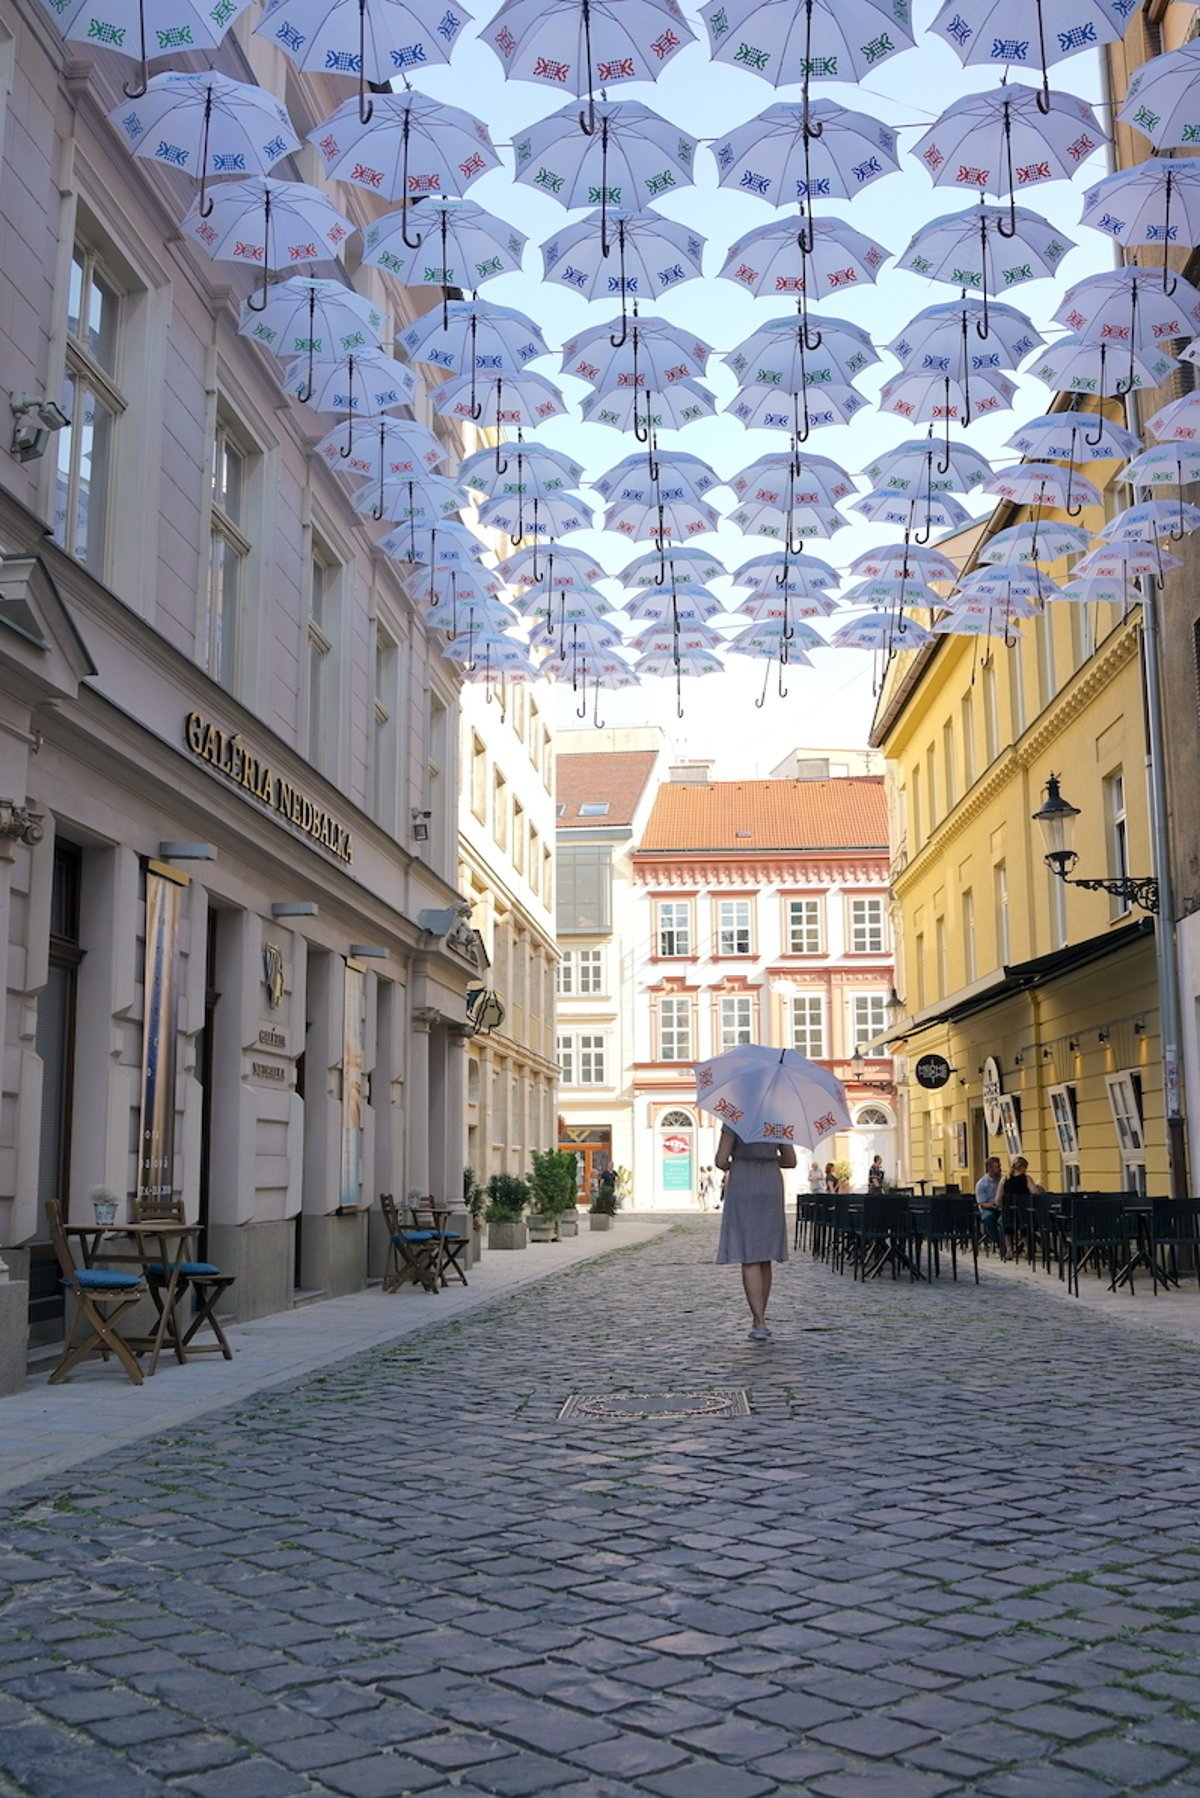 The first Umbrella Street in Bratislava attracts both tourists and ...